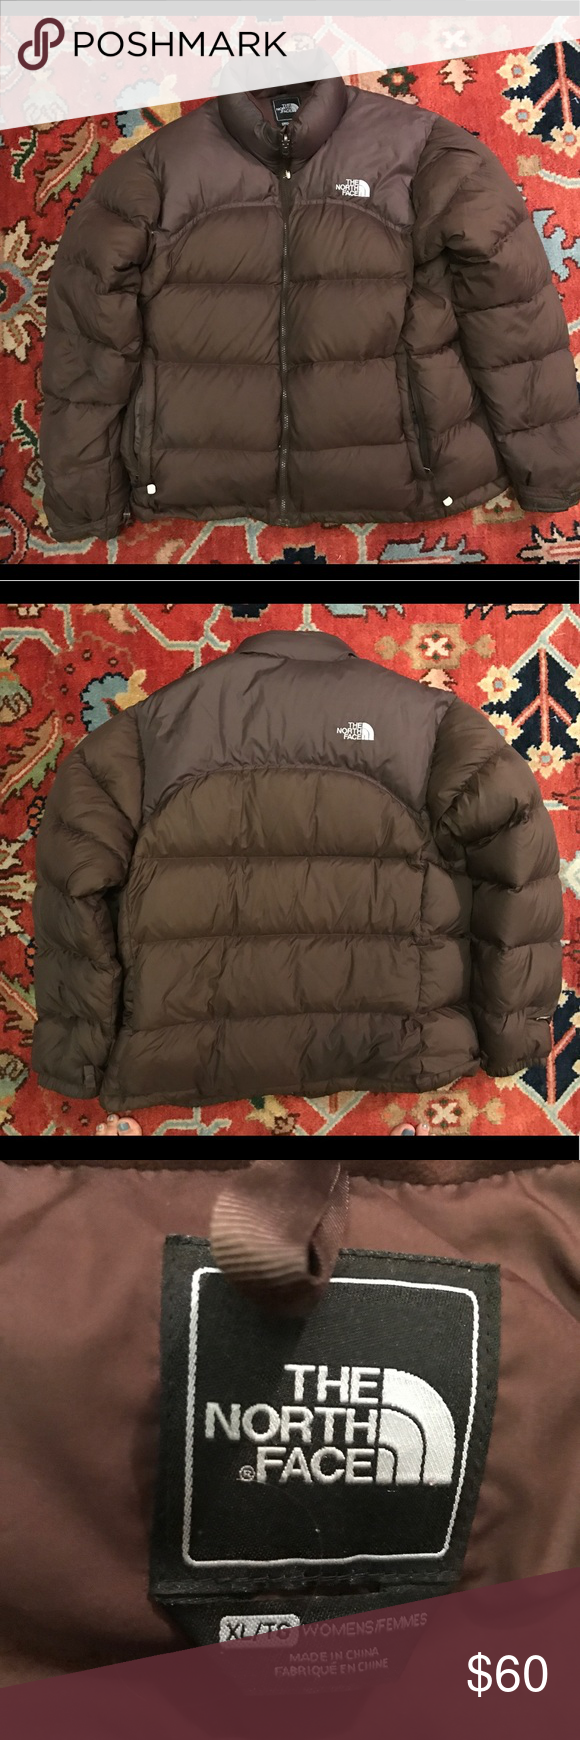 The North Face Women S Nuptse Down Jacket North Face Nuptse The North Face Down Jacket [ 1740 x 580 Pixel ]